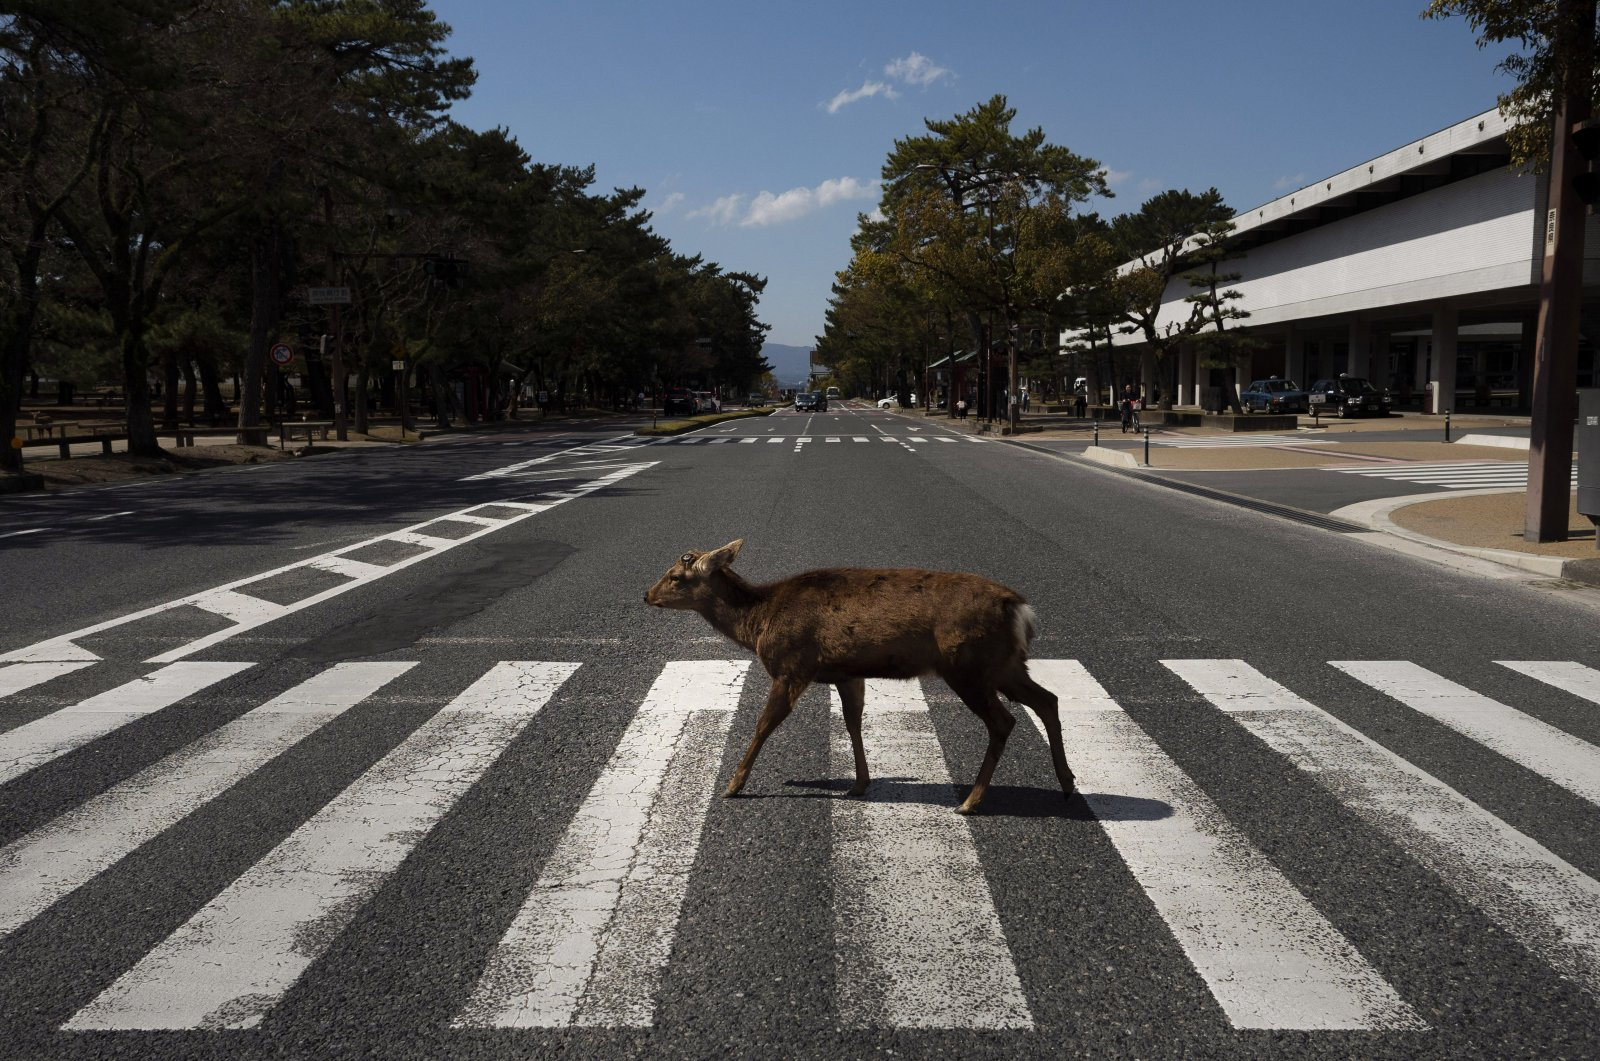 A deer walks across a pedestrian crossing in Nara, Japan, Thursday, March 19, 2020. (AP Photo)